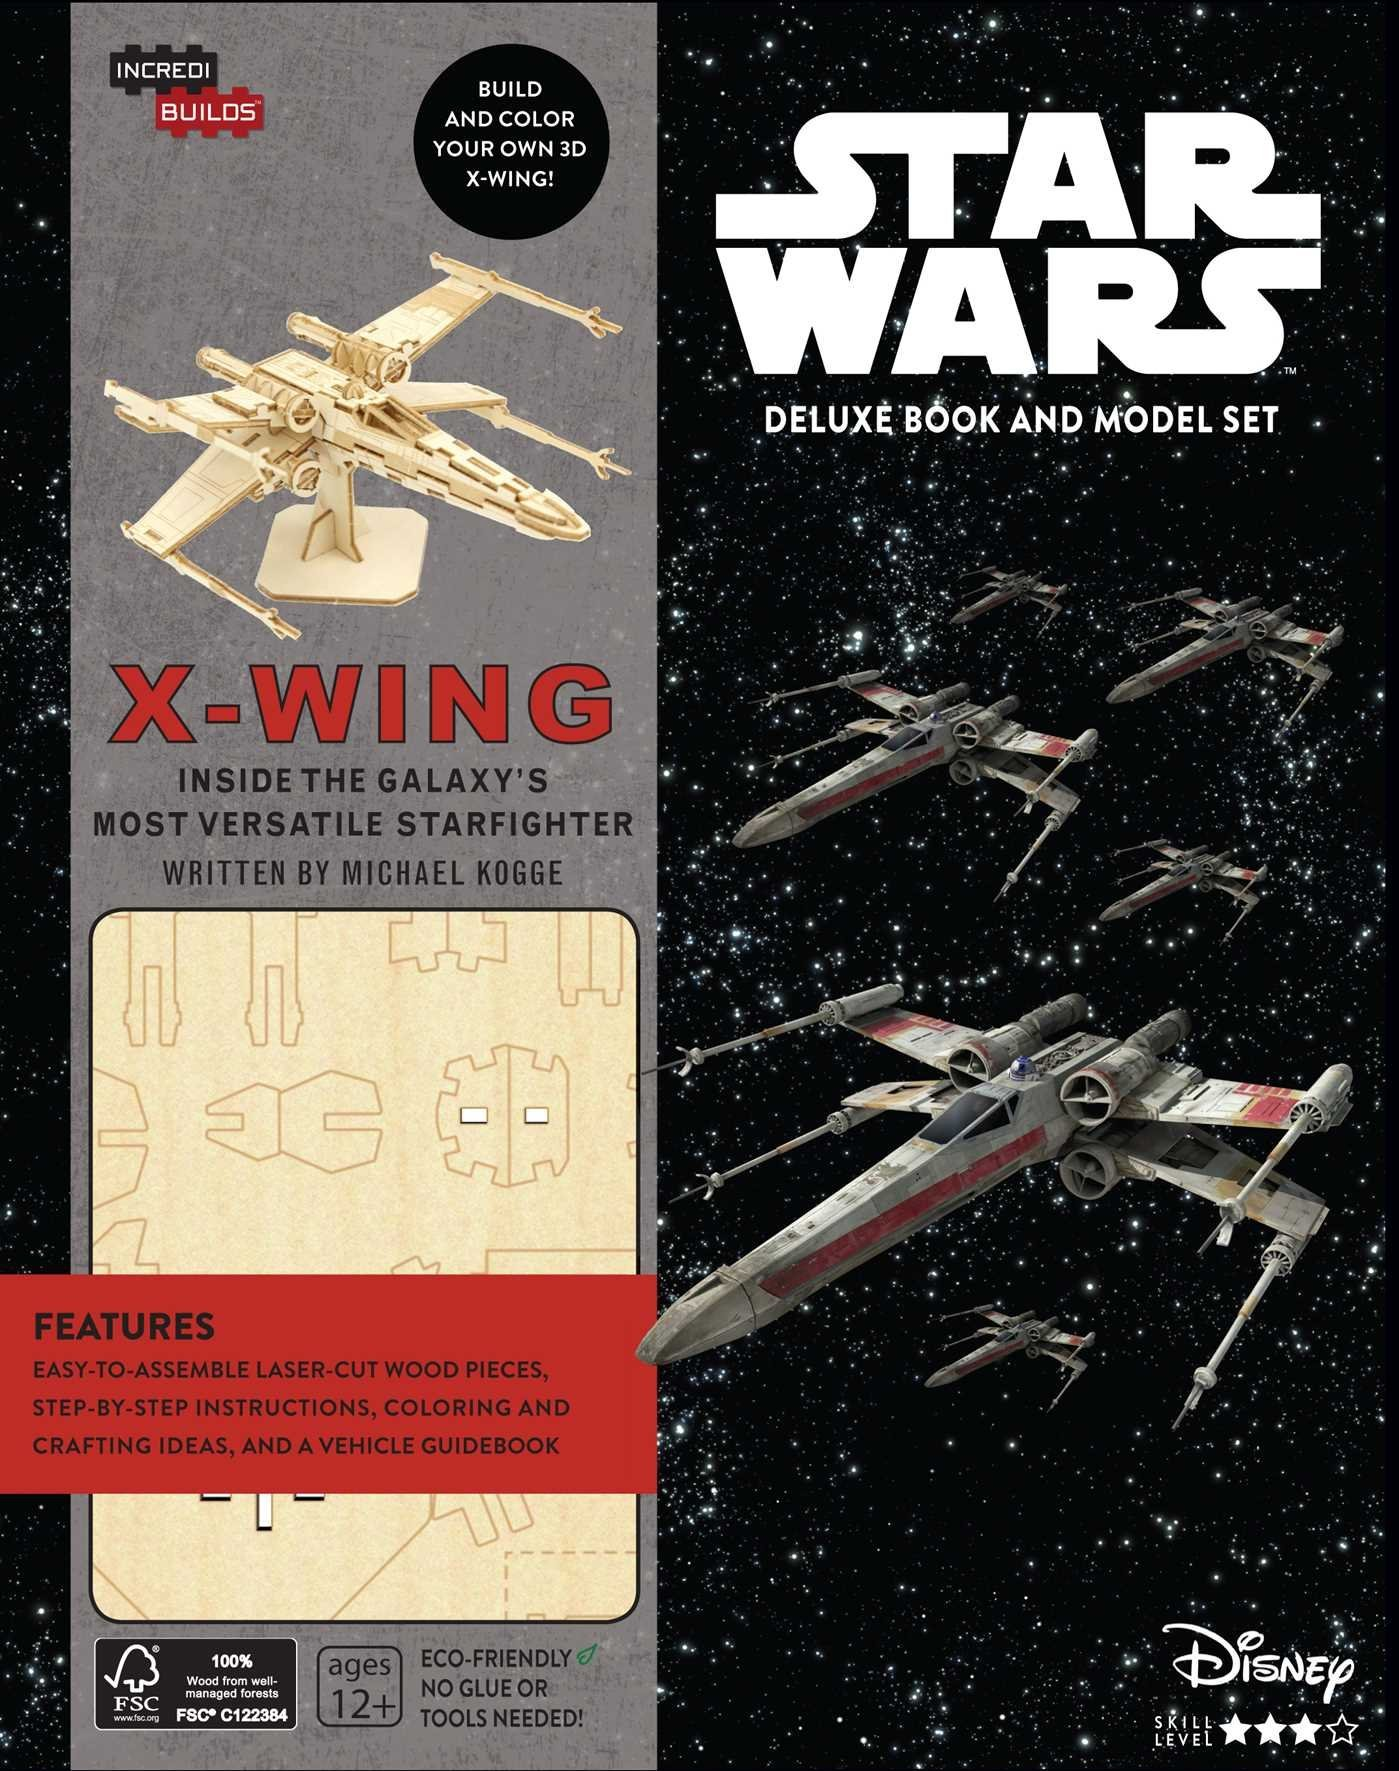 Star Wars: X-Wing - Inside the Galaxy's Most Versatile Starfighter